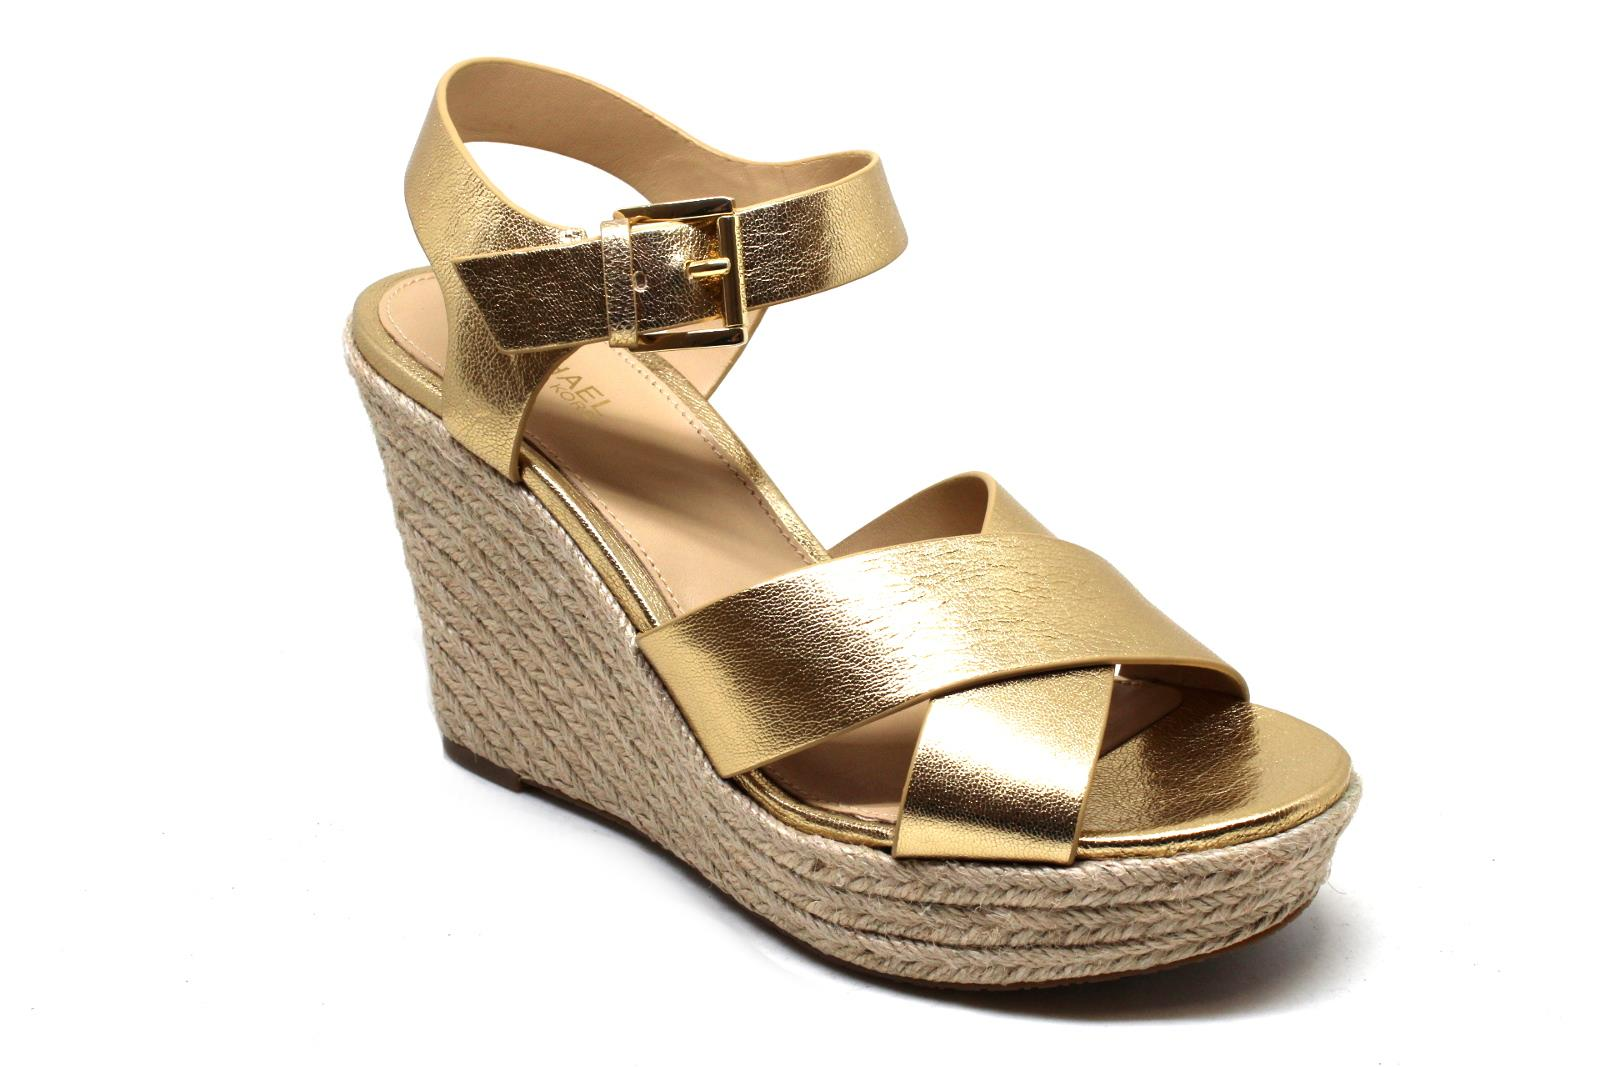 7b90db12cf MICHAEL KORS KADY WEDGE